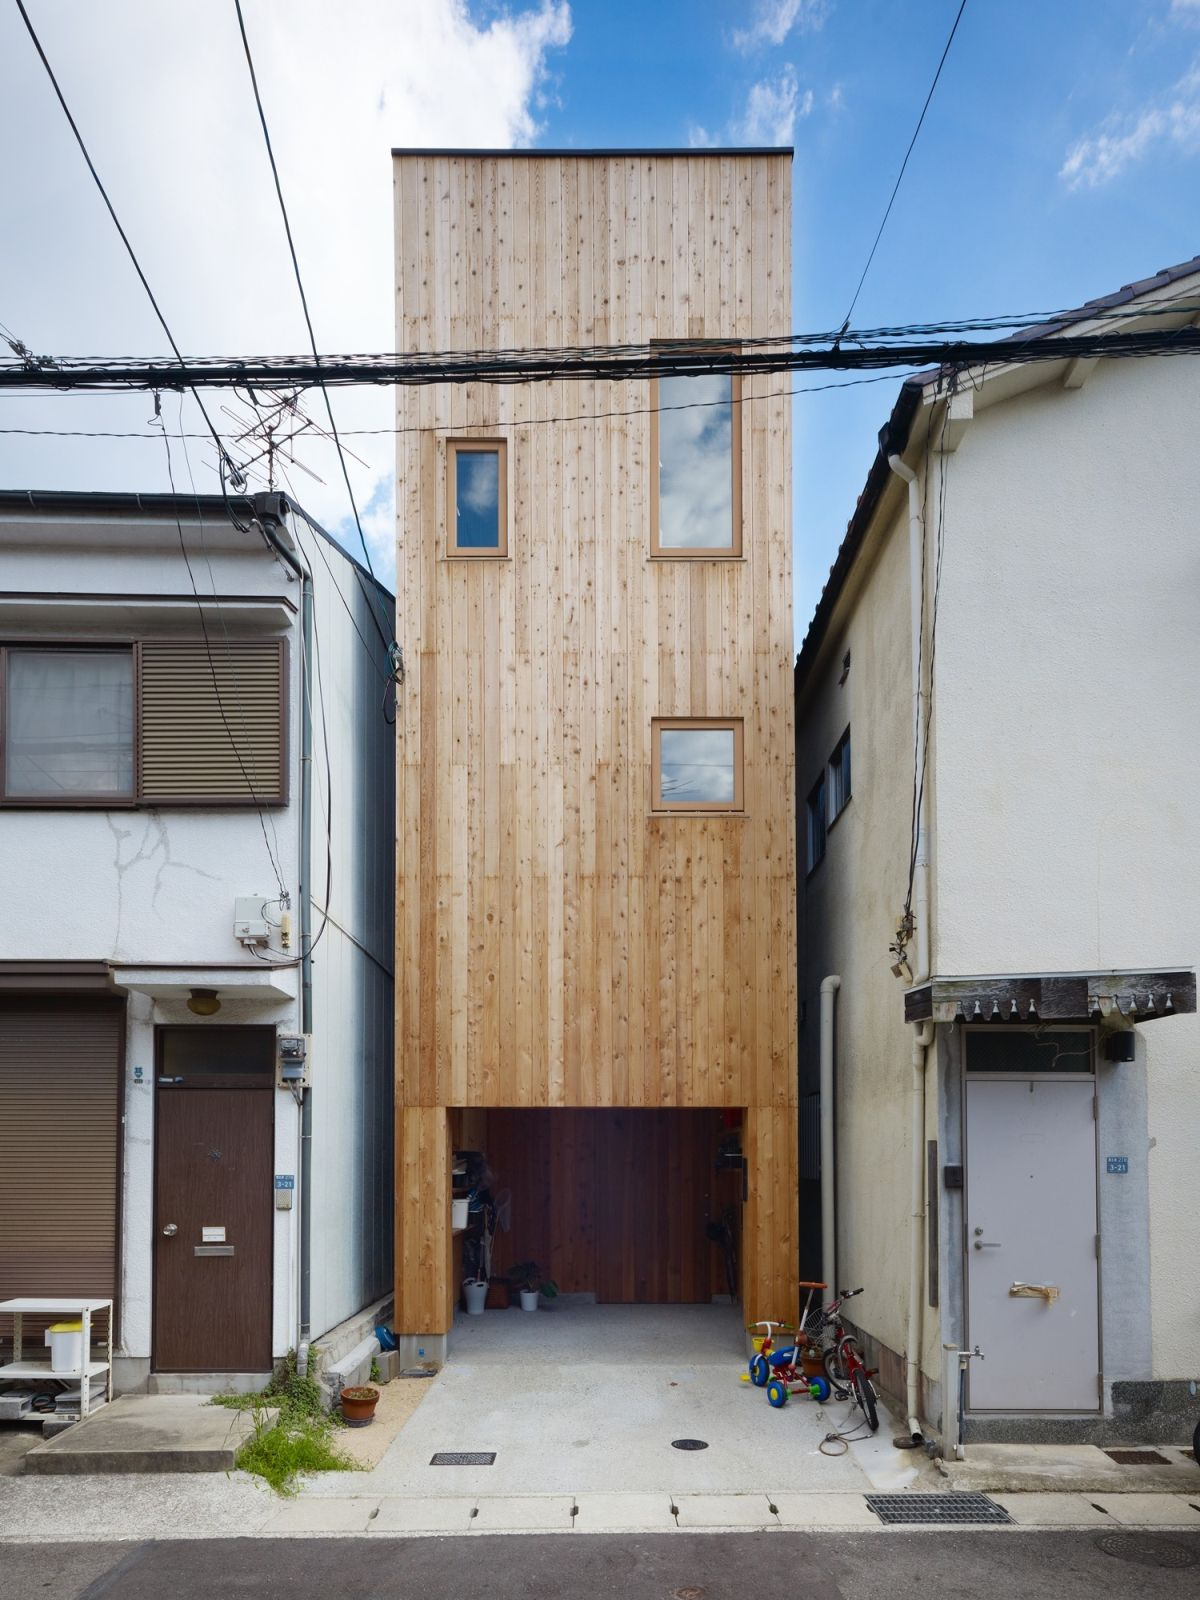 This narrow house in Nada